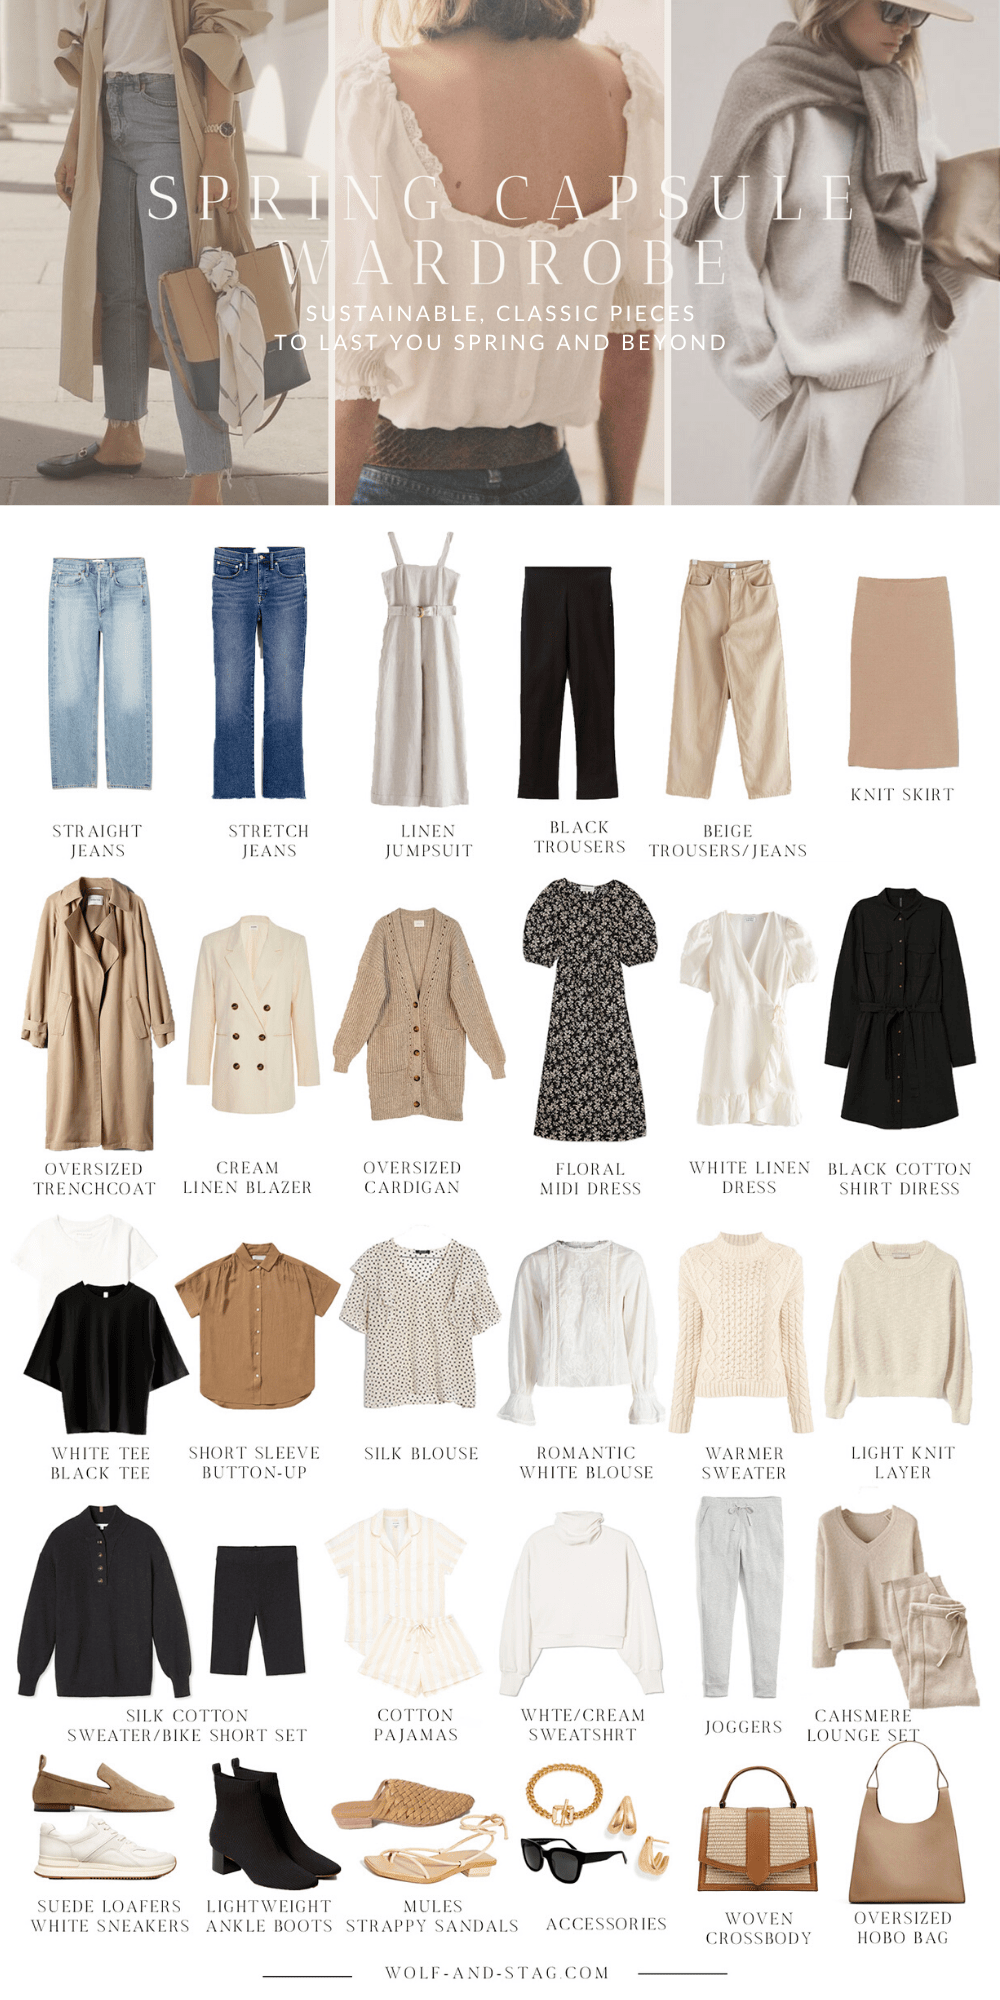 Photo of The (Mostly) Sustainable Spring Capsule Wardrobe » Wolf  Stag